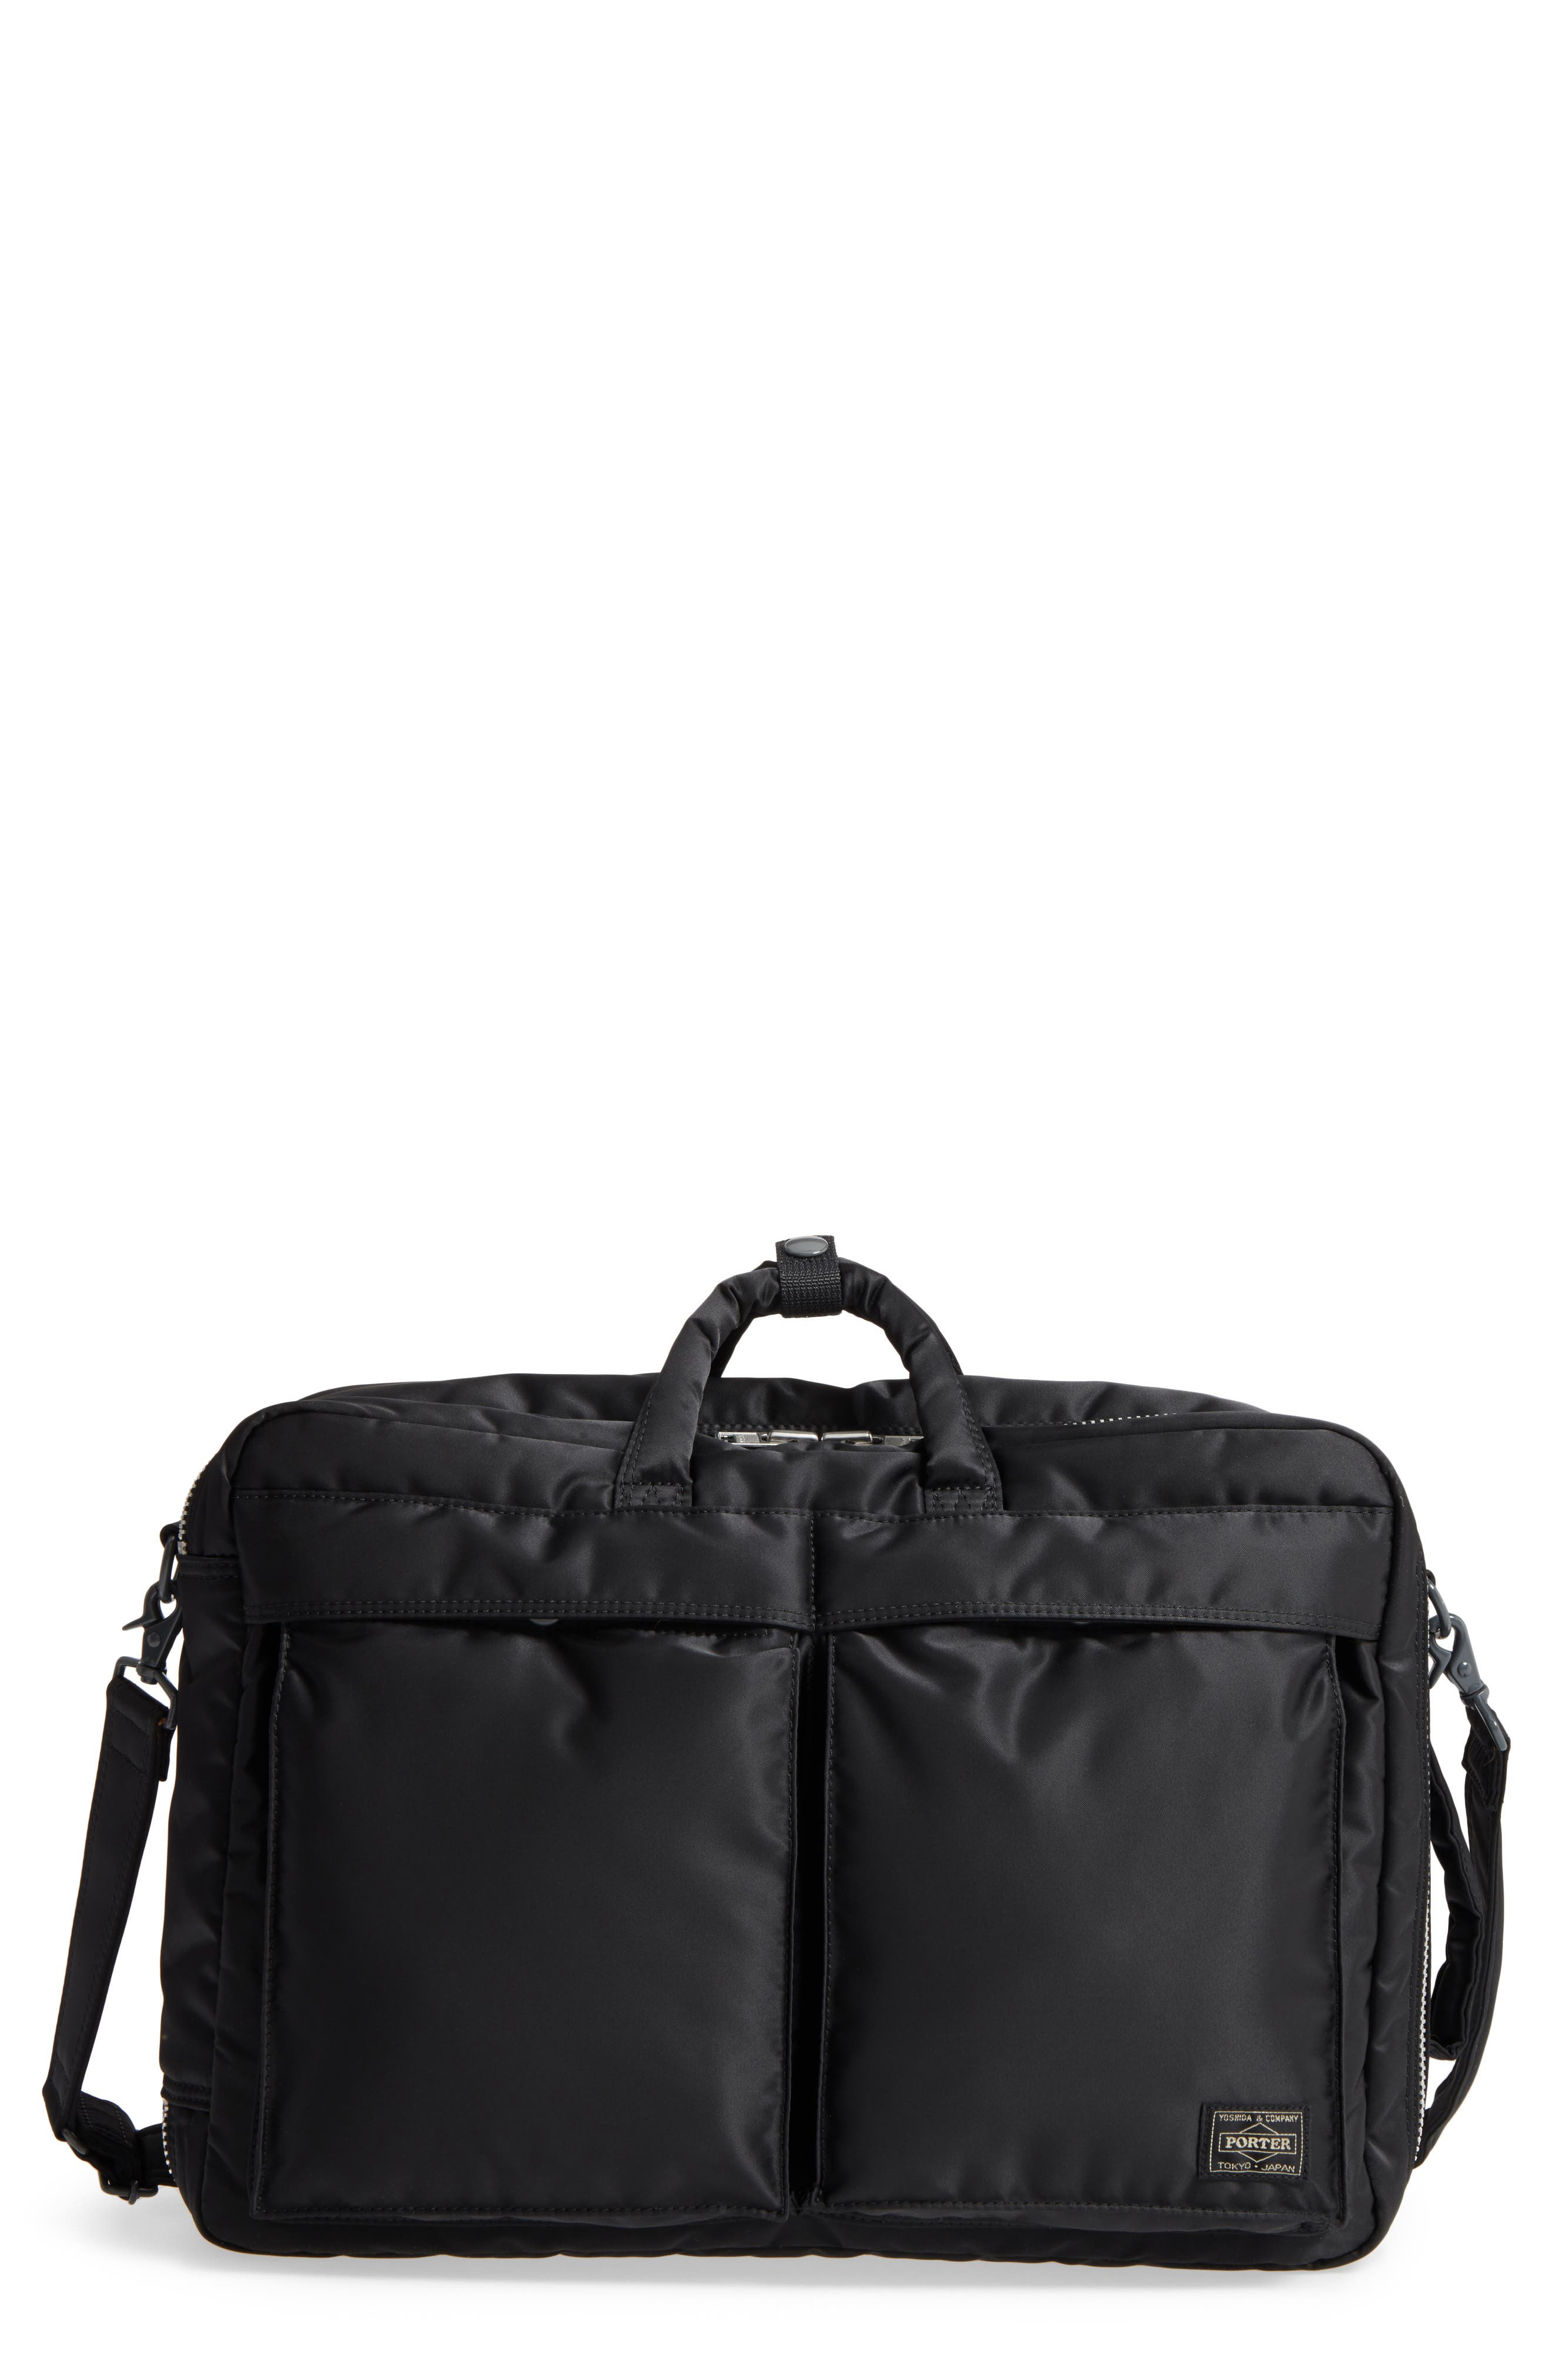 Alternate Image 1 Selected - Porter-Yoshida & Co. Tanker Three-Way Briefcase